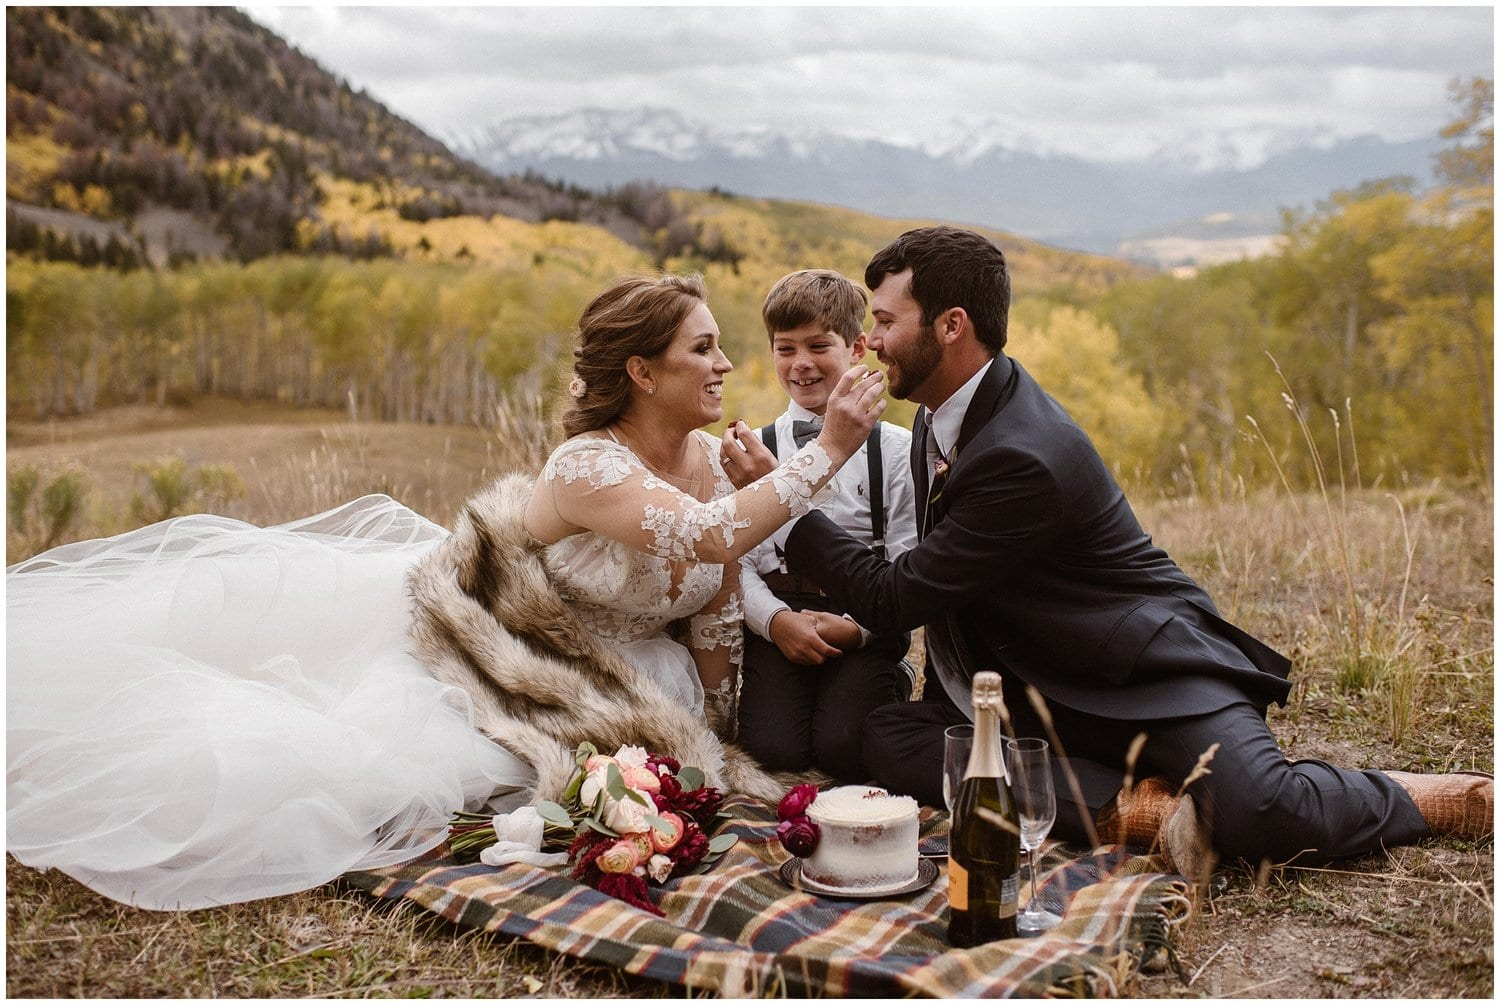 Bride and groom have a picnic with their son on their wedding day.